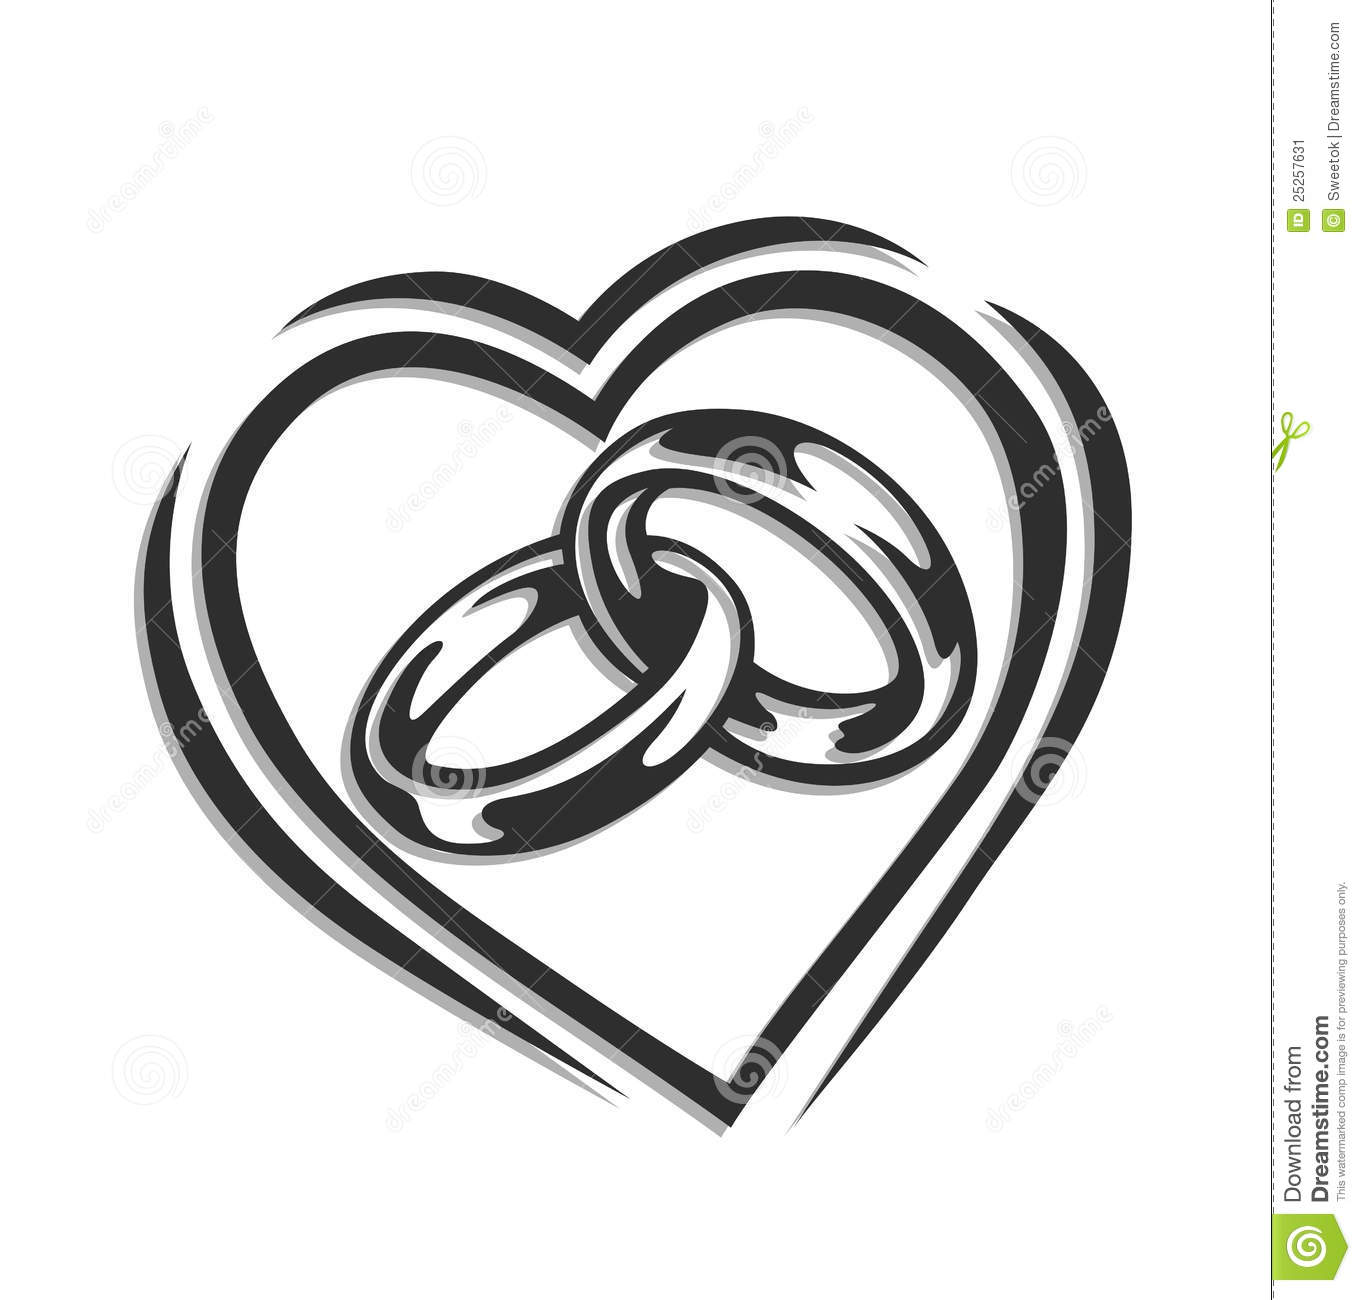 Image Result For Wedding Rings Designs Heart